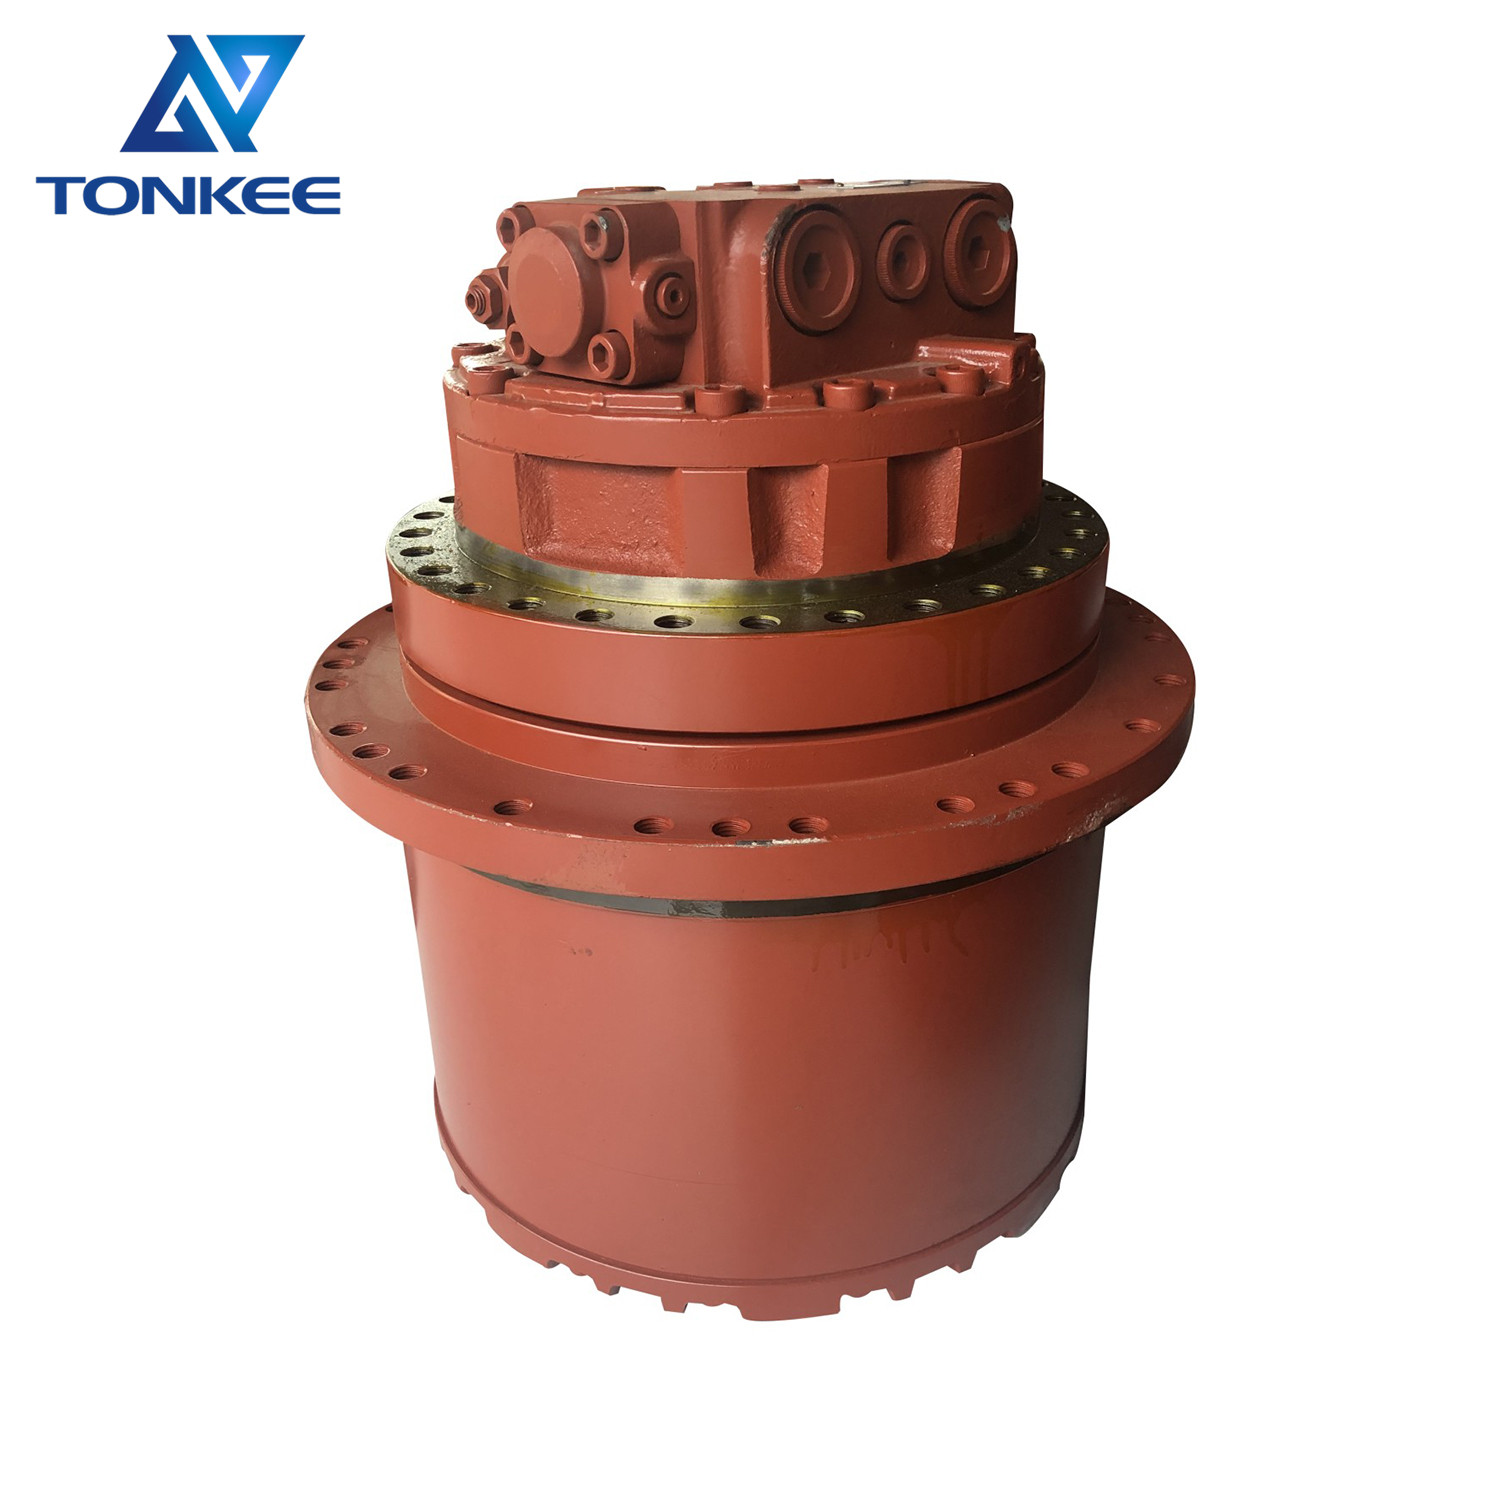 MAG-170VP-3400E B0240-93021 final drive group assy CX210 year 2001 CX210B travel motor assembly suitable for CASE